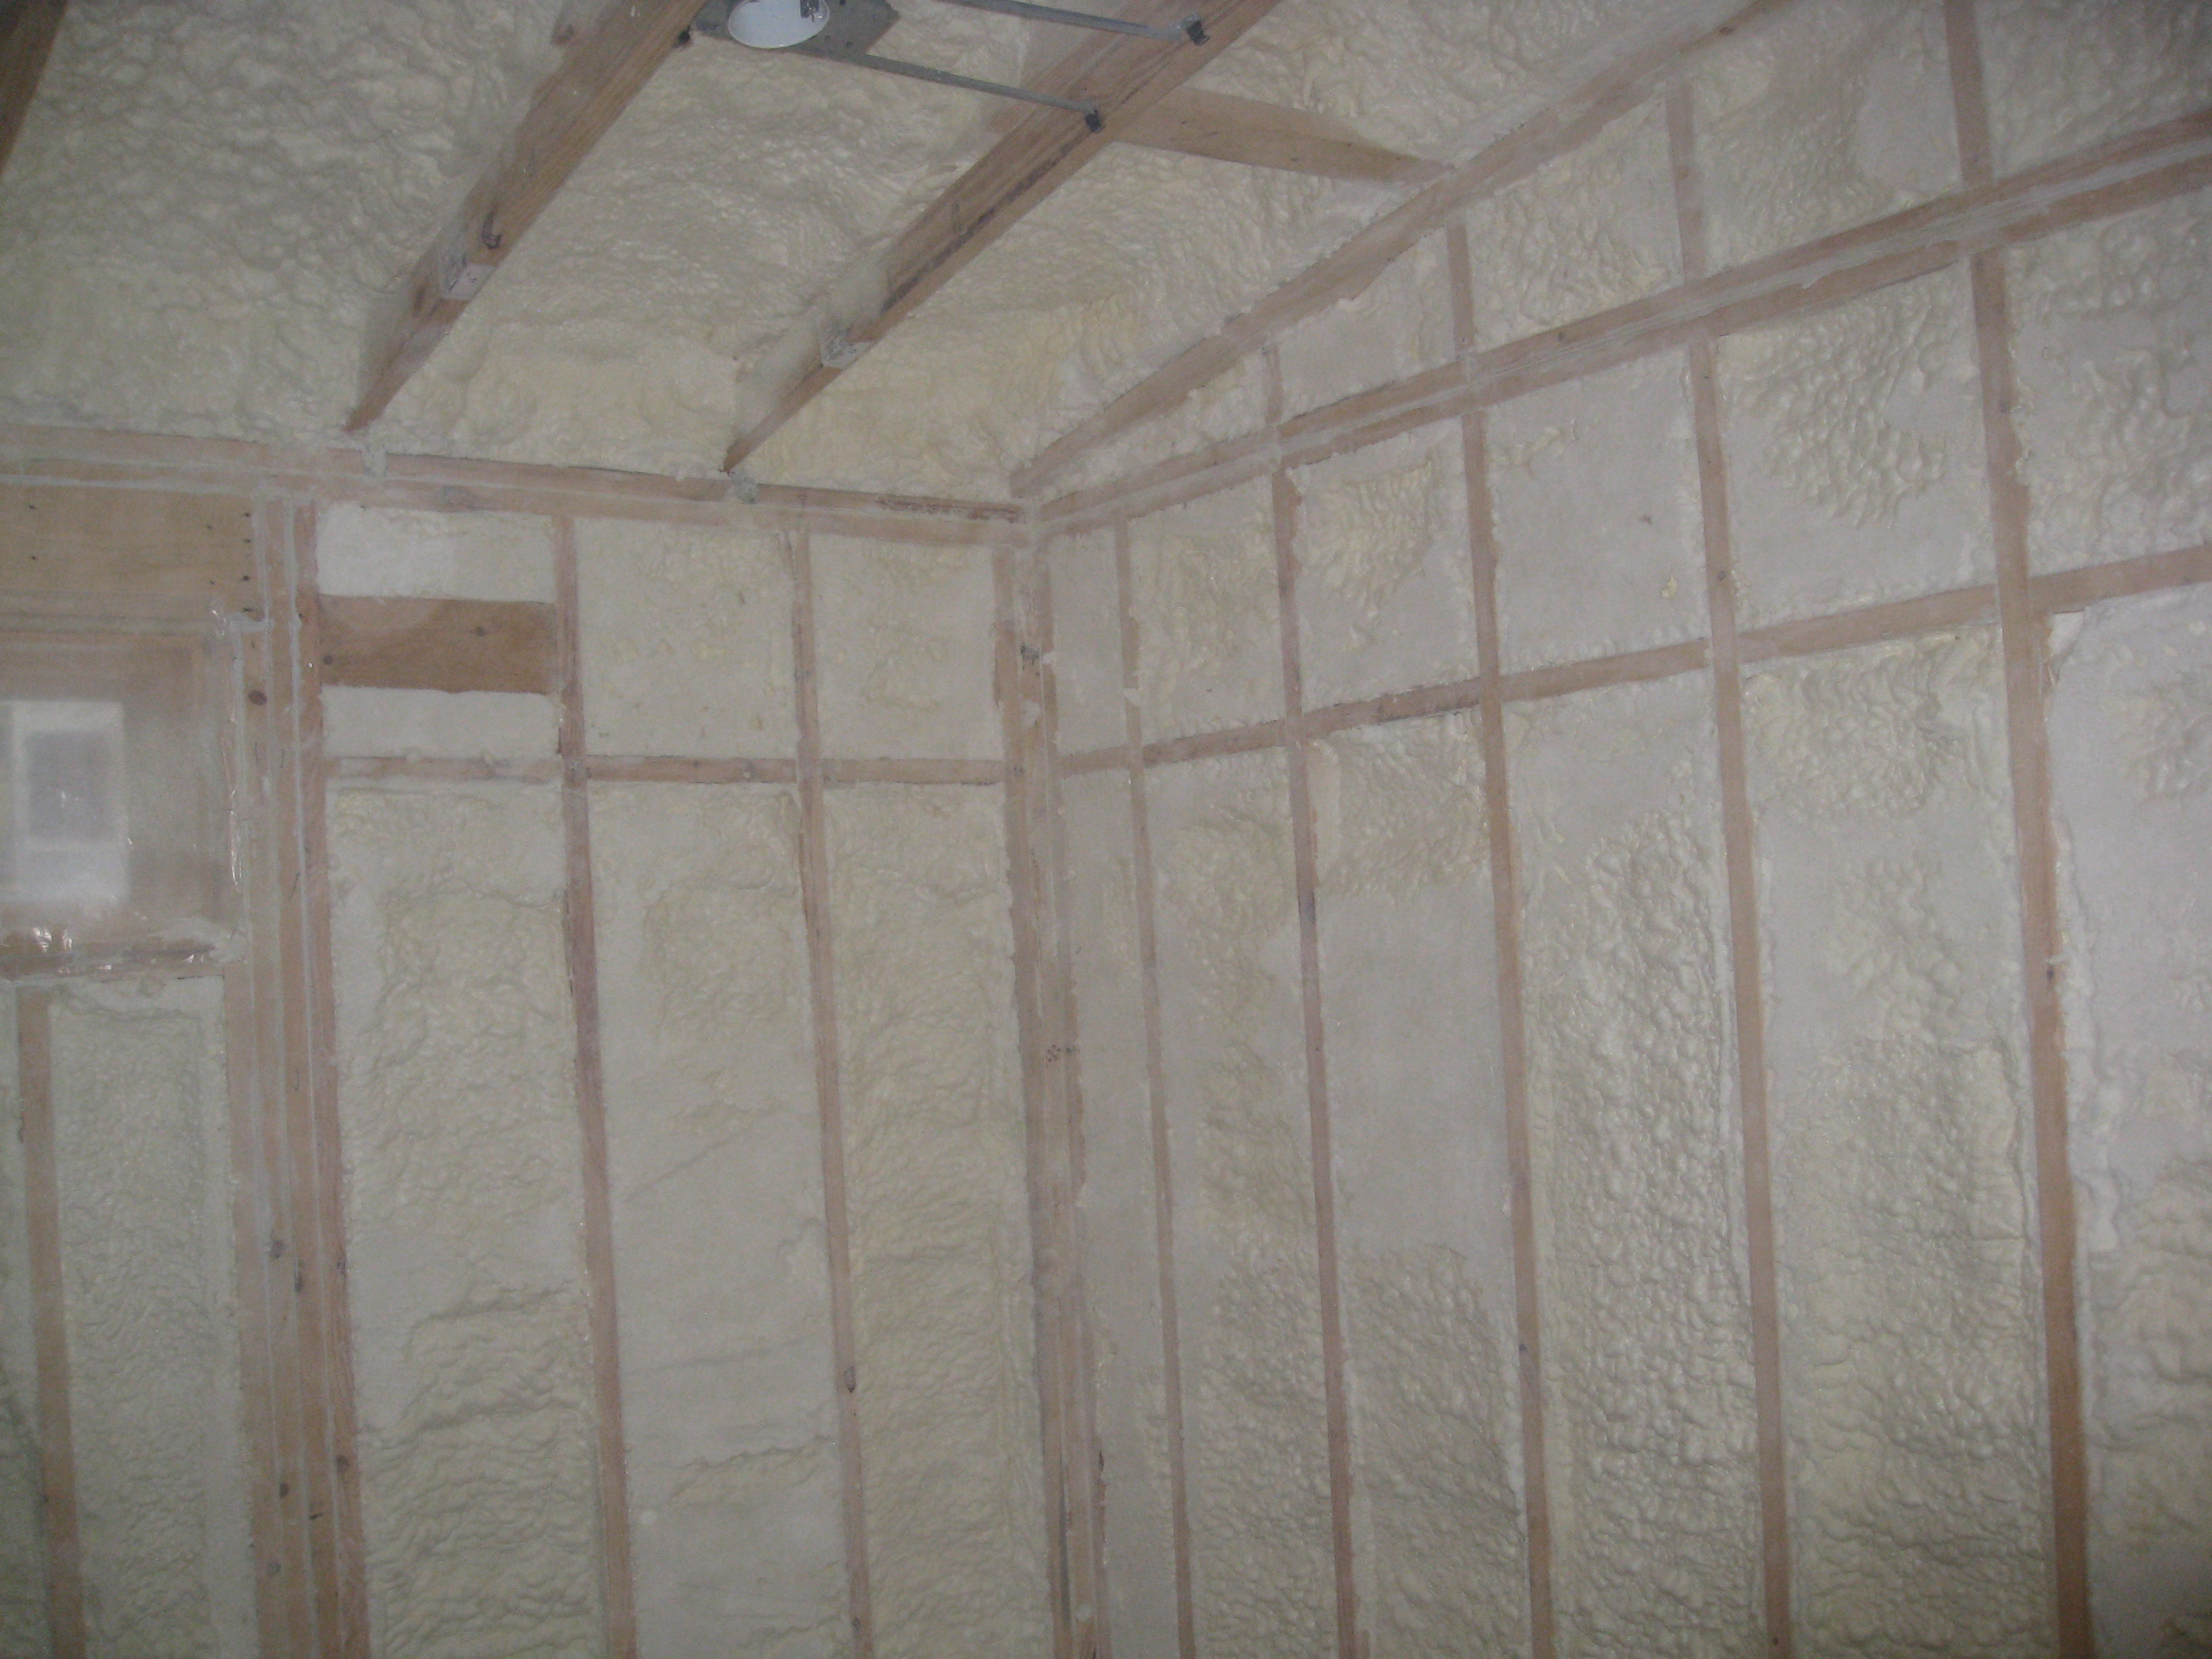 Spray foam insulation is installed in open wall cavities to air seal and insulate